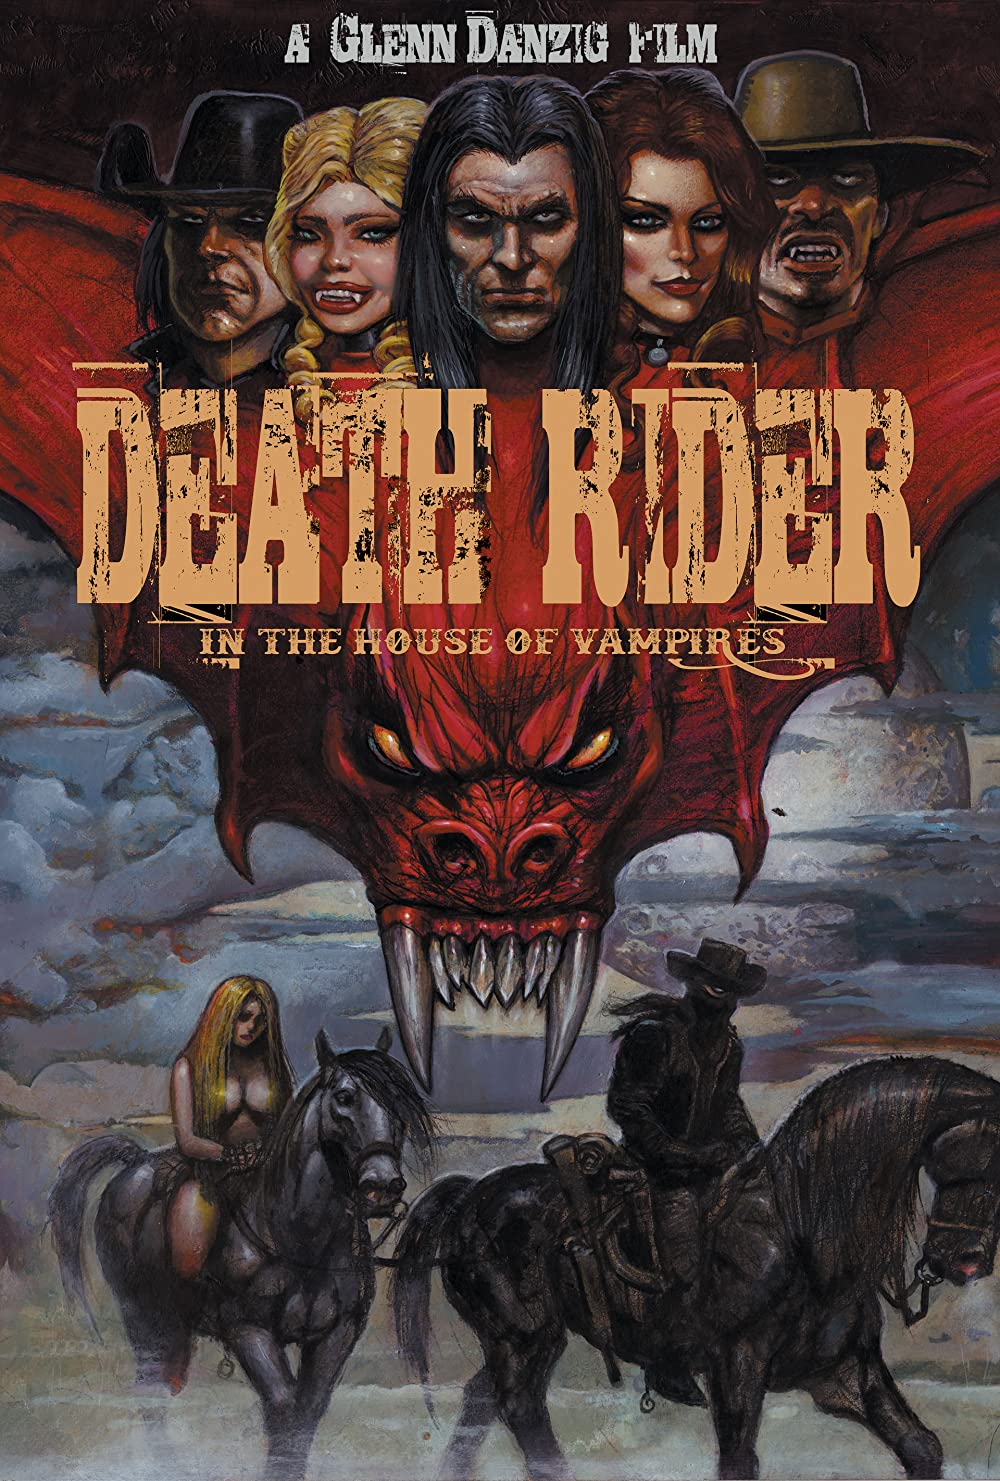 Death Rider in the House of Vampires poster